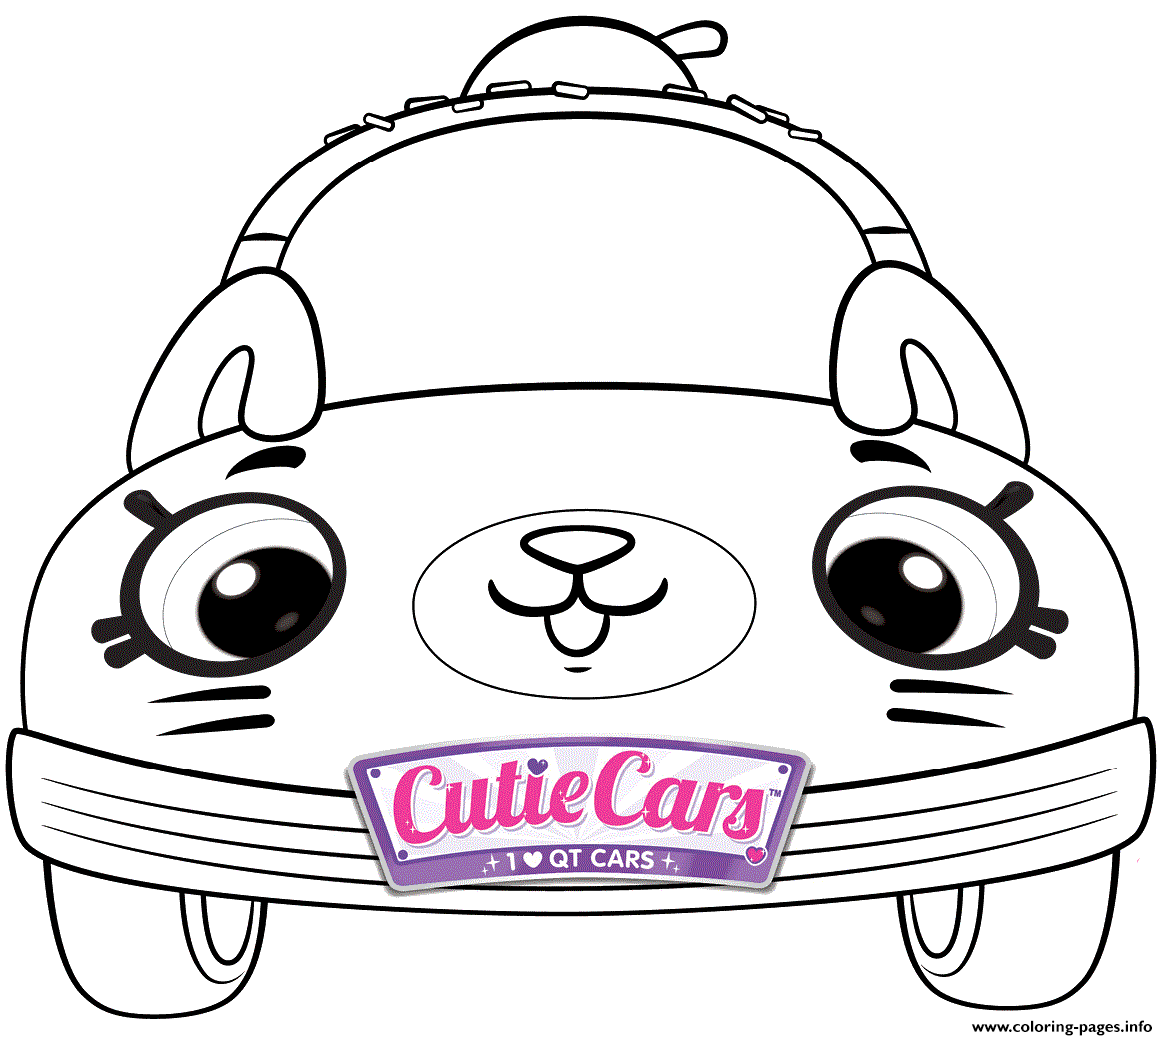 Cutie Cars Shopkins Kids Coloring Pages Printable